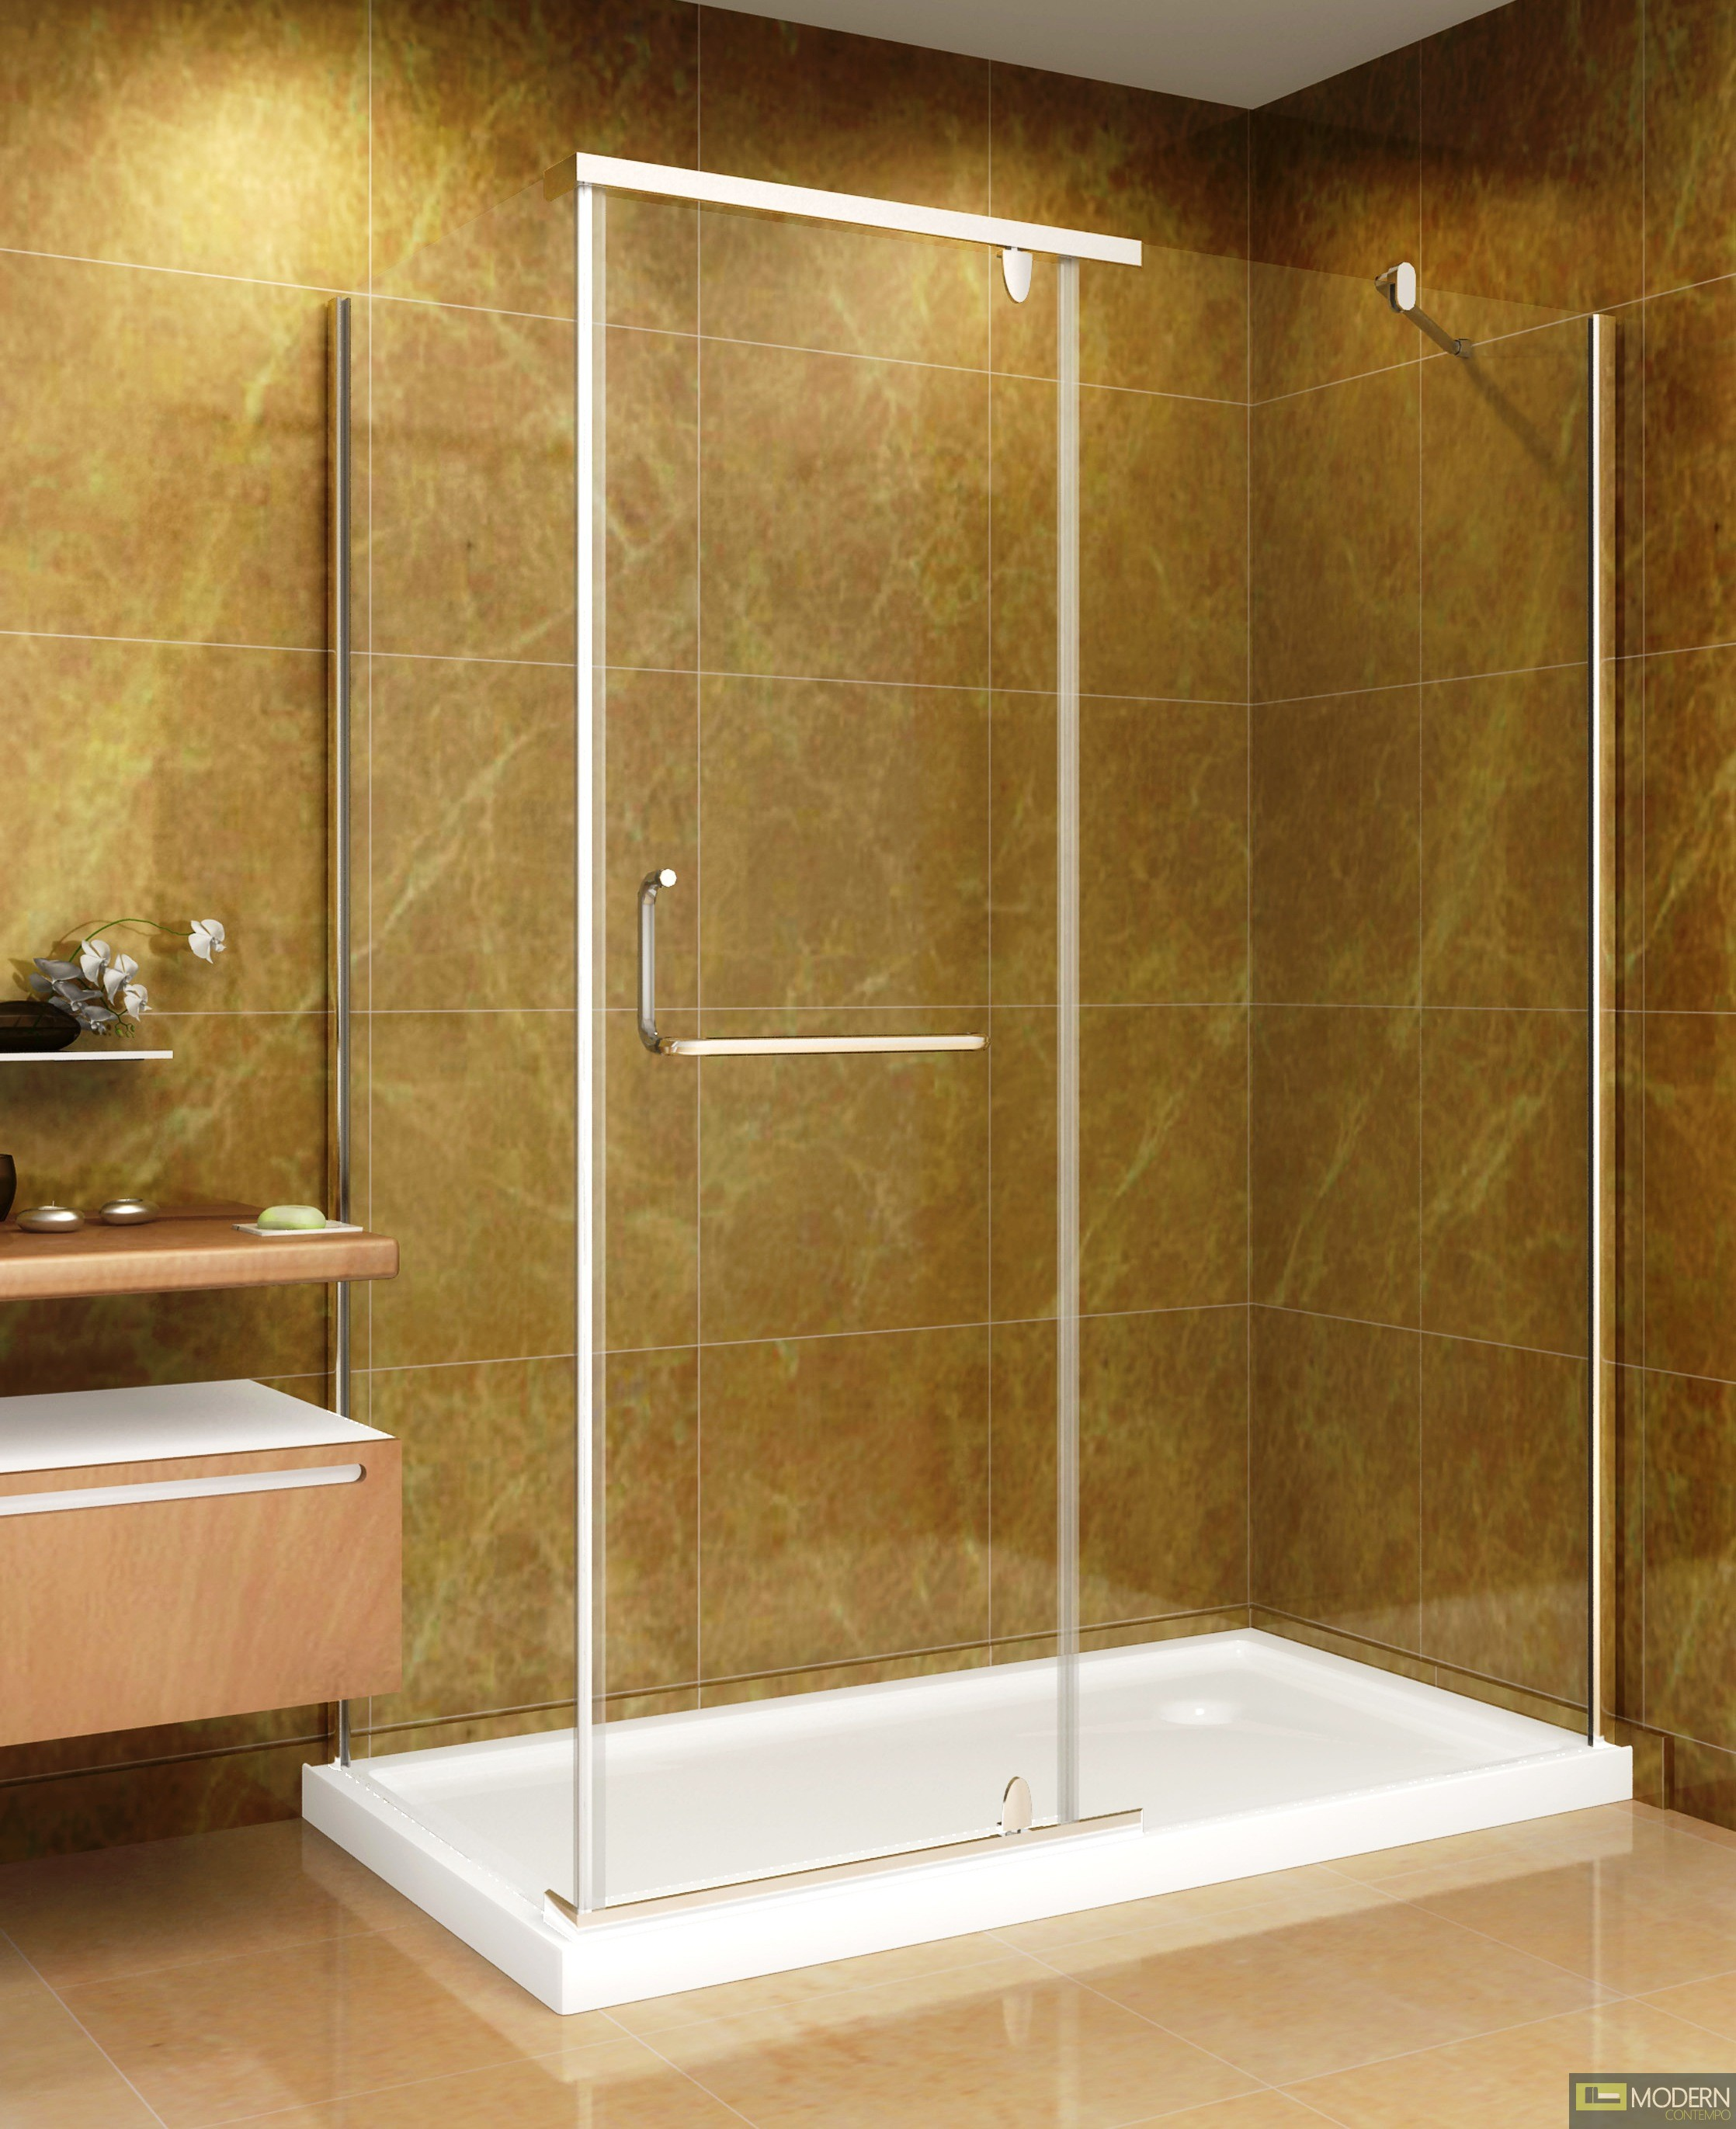 60 Quot X 35 Quot Shower Enclosure With Acrylic Shower Base In